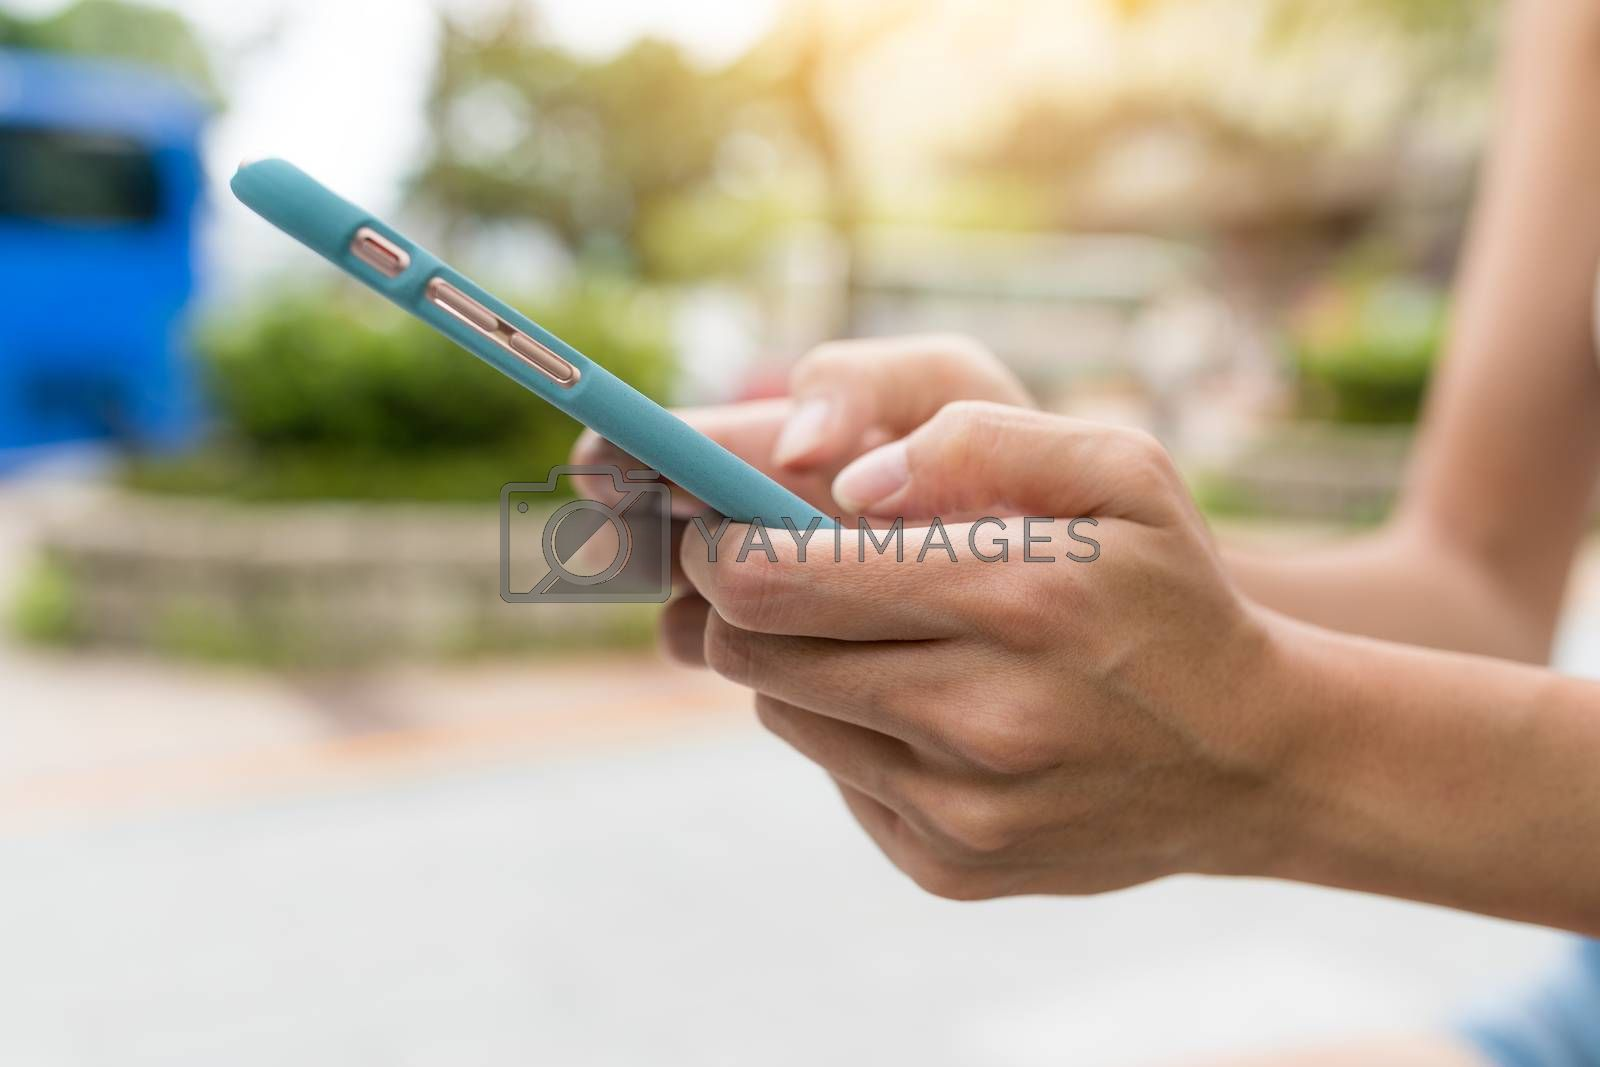 Using mobile phone in the street